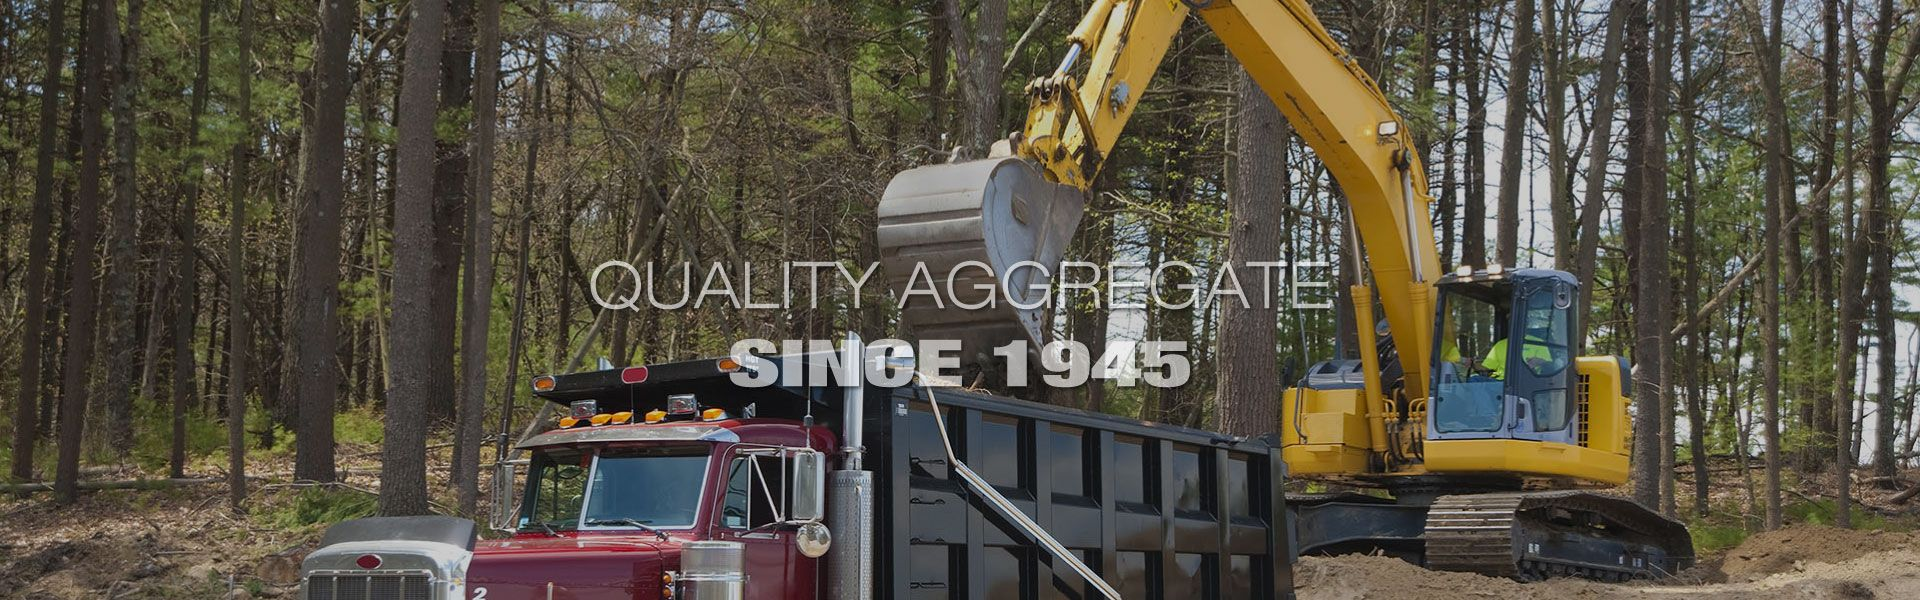 Quality Aggregate Since 1945 | excavator loading truck